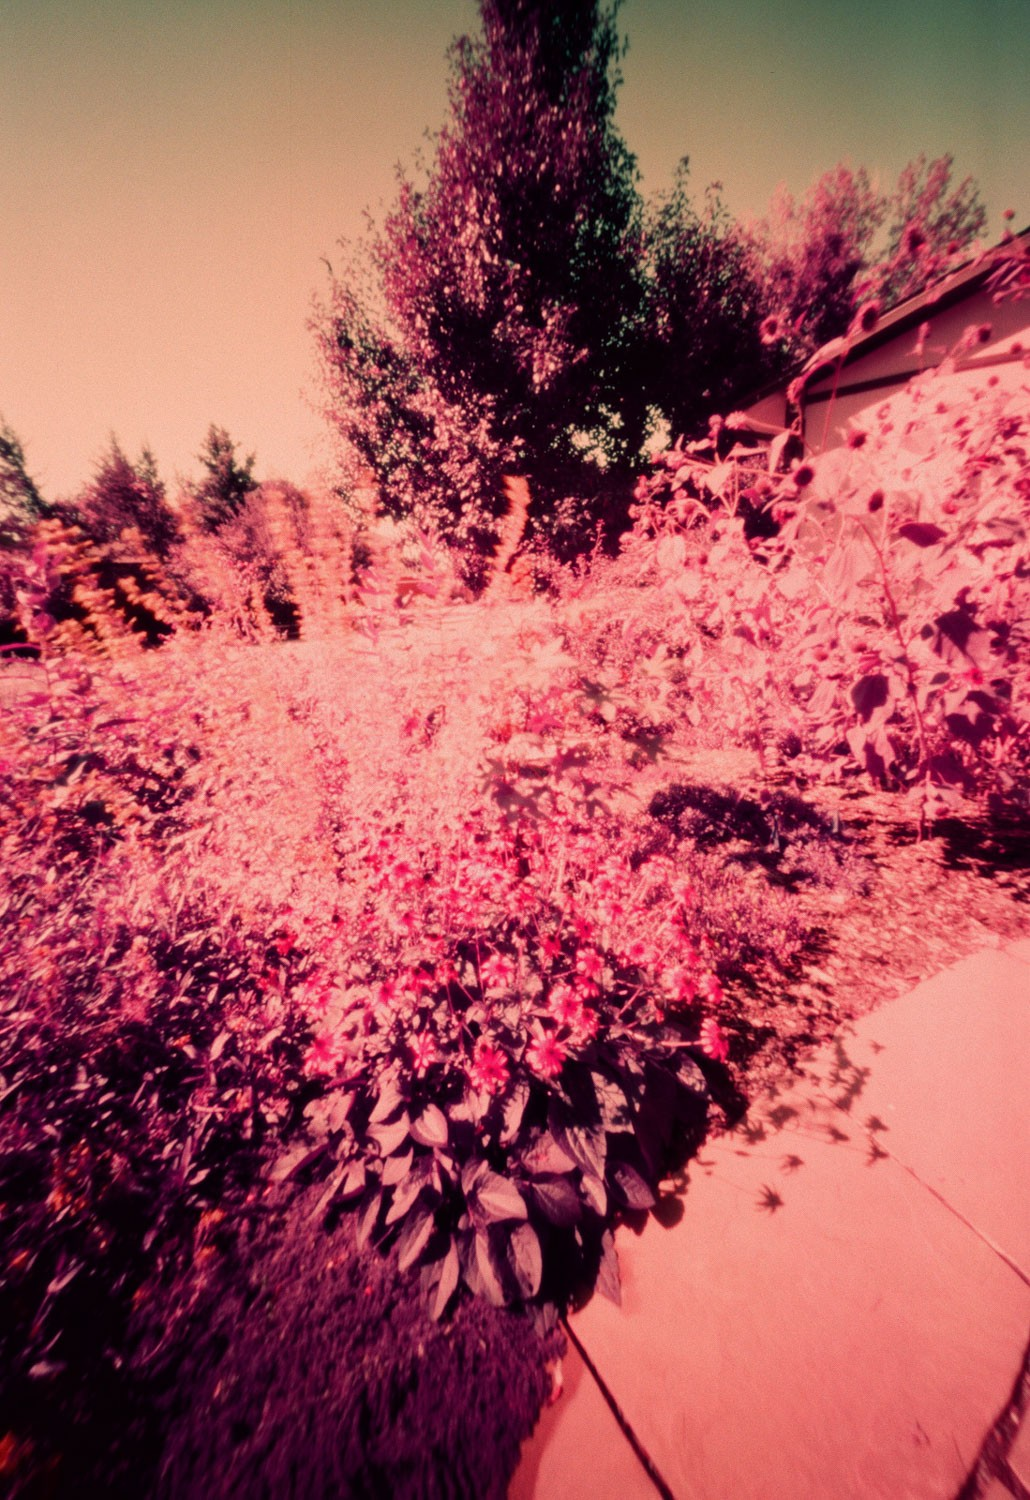 Figure 11 - LomoChrome Purple XR 100-400 - Pinhole (40 seconds)